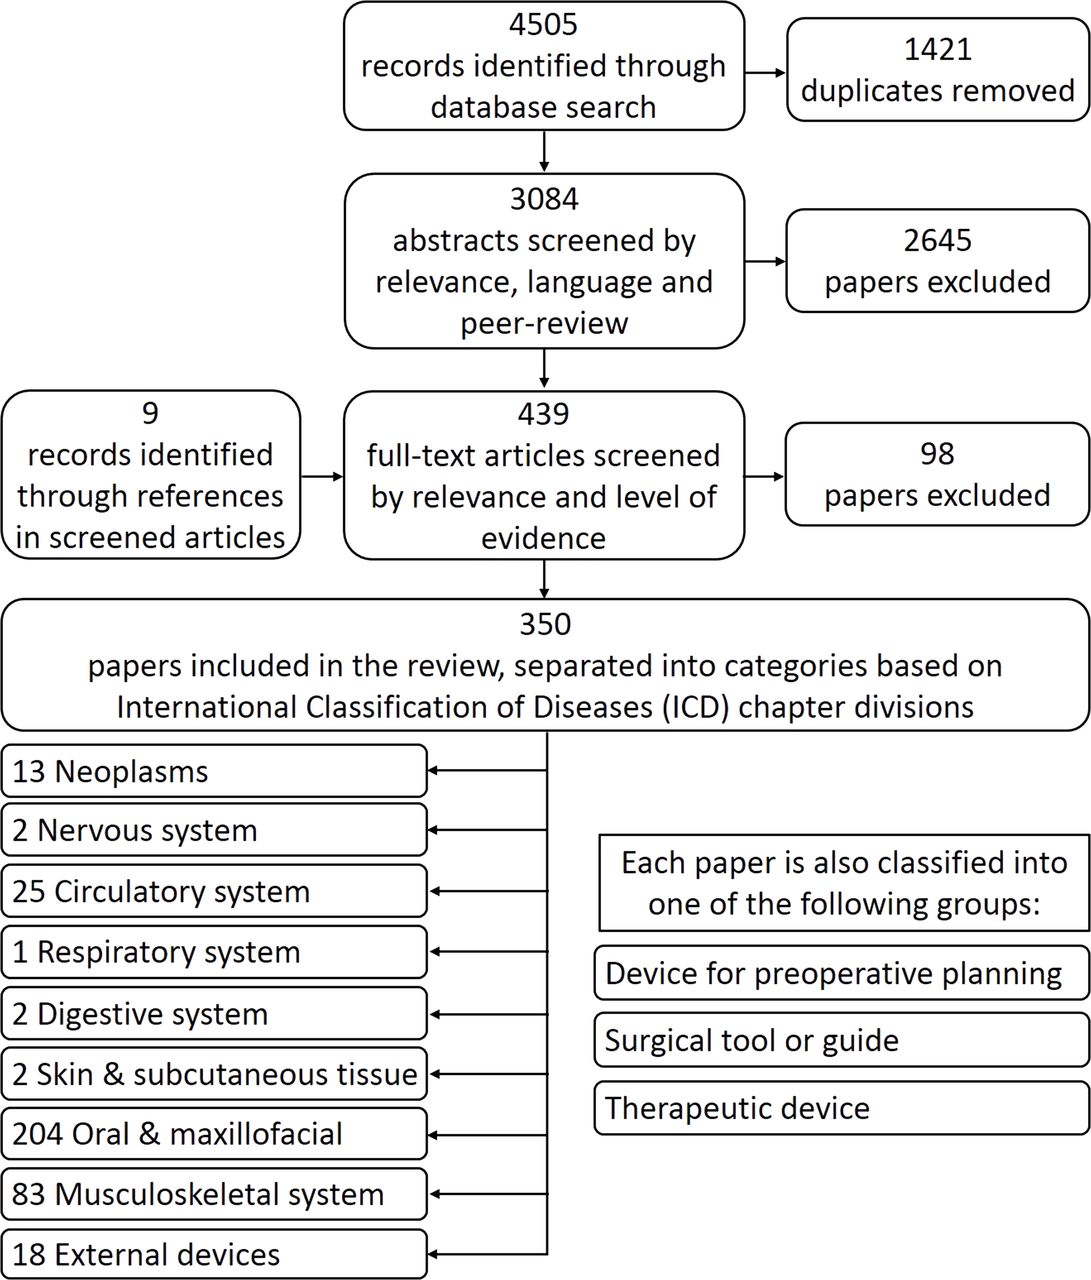 Clinical Efficacy And Effectiveness Of 3d Printing A Systematic Review